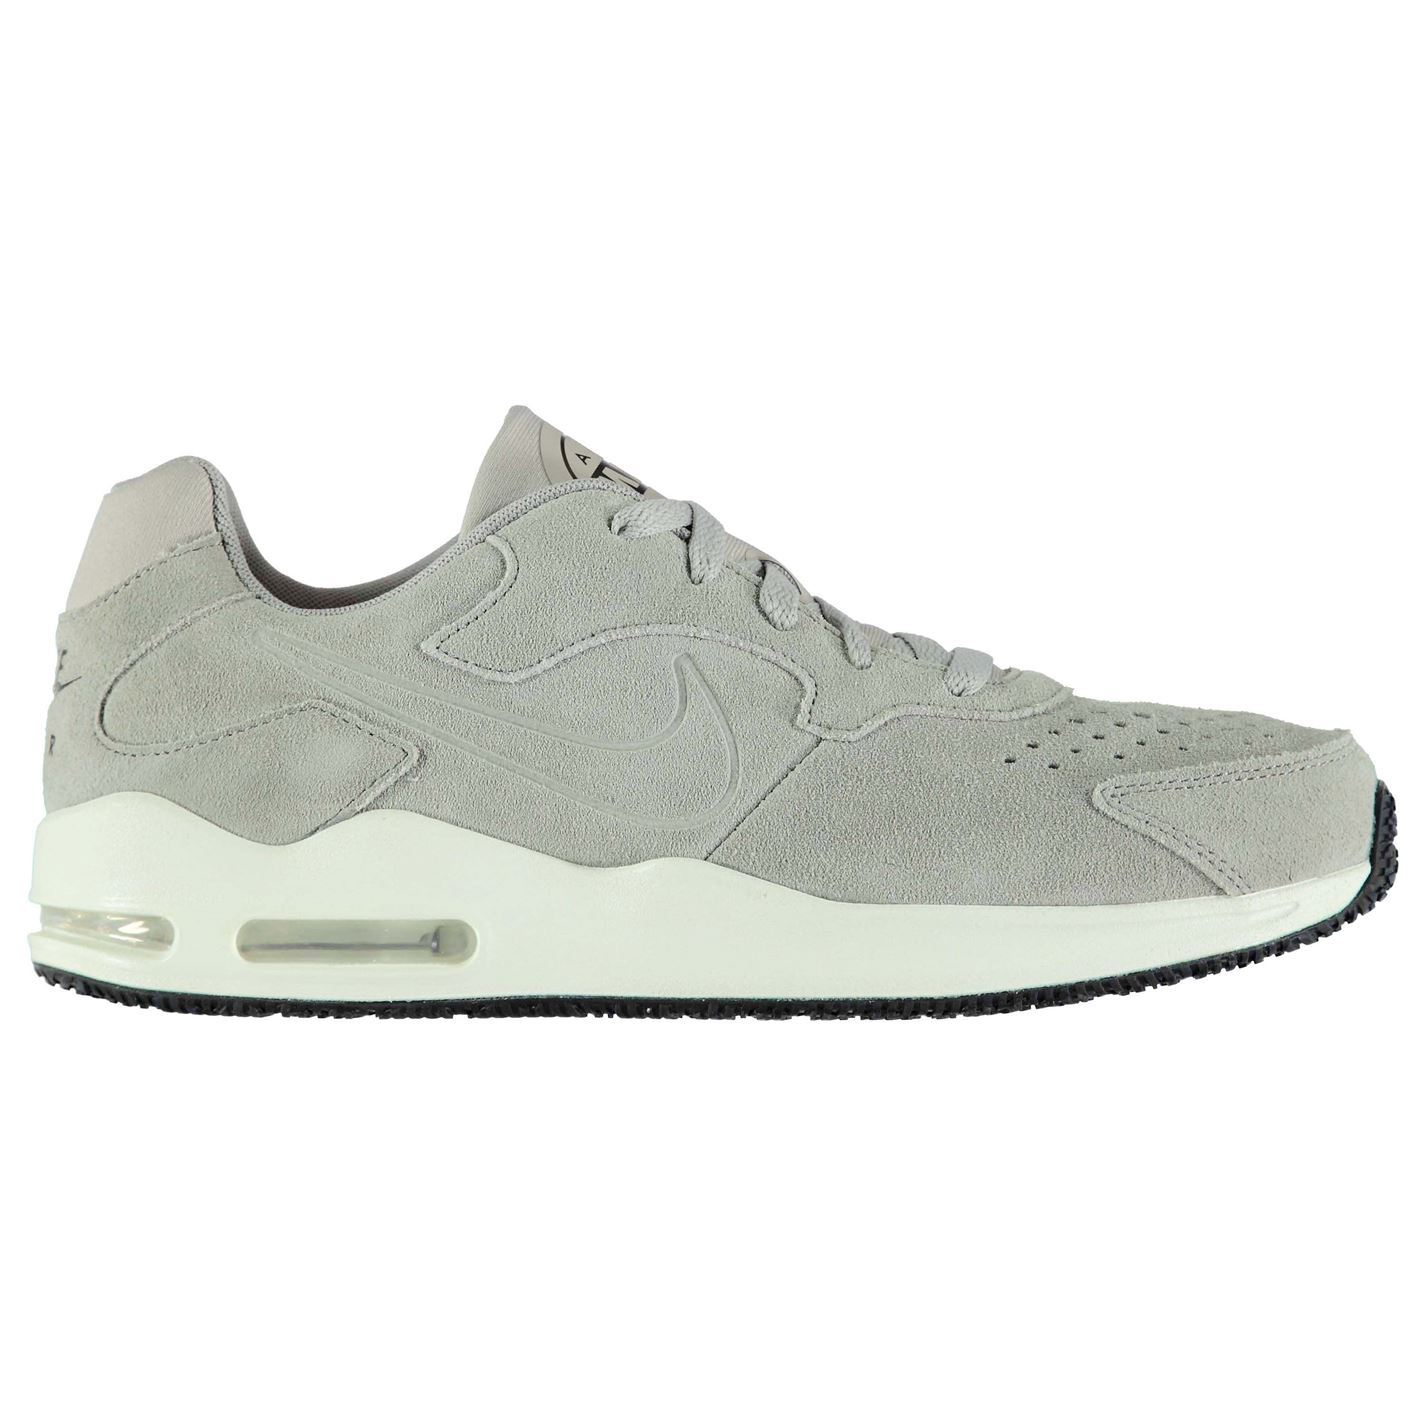 nike air max guile trainers mens grey athletic sneakers shoes ebay rh ebay co uk